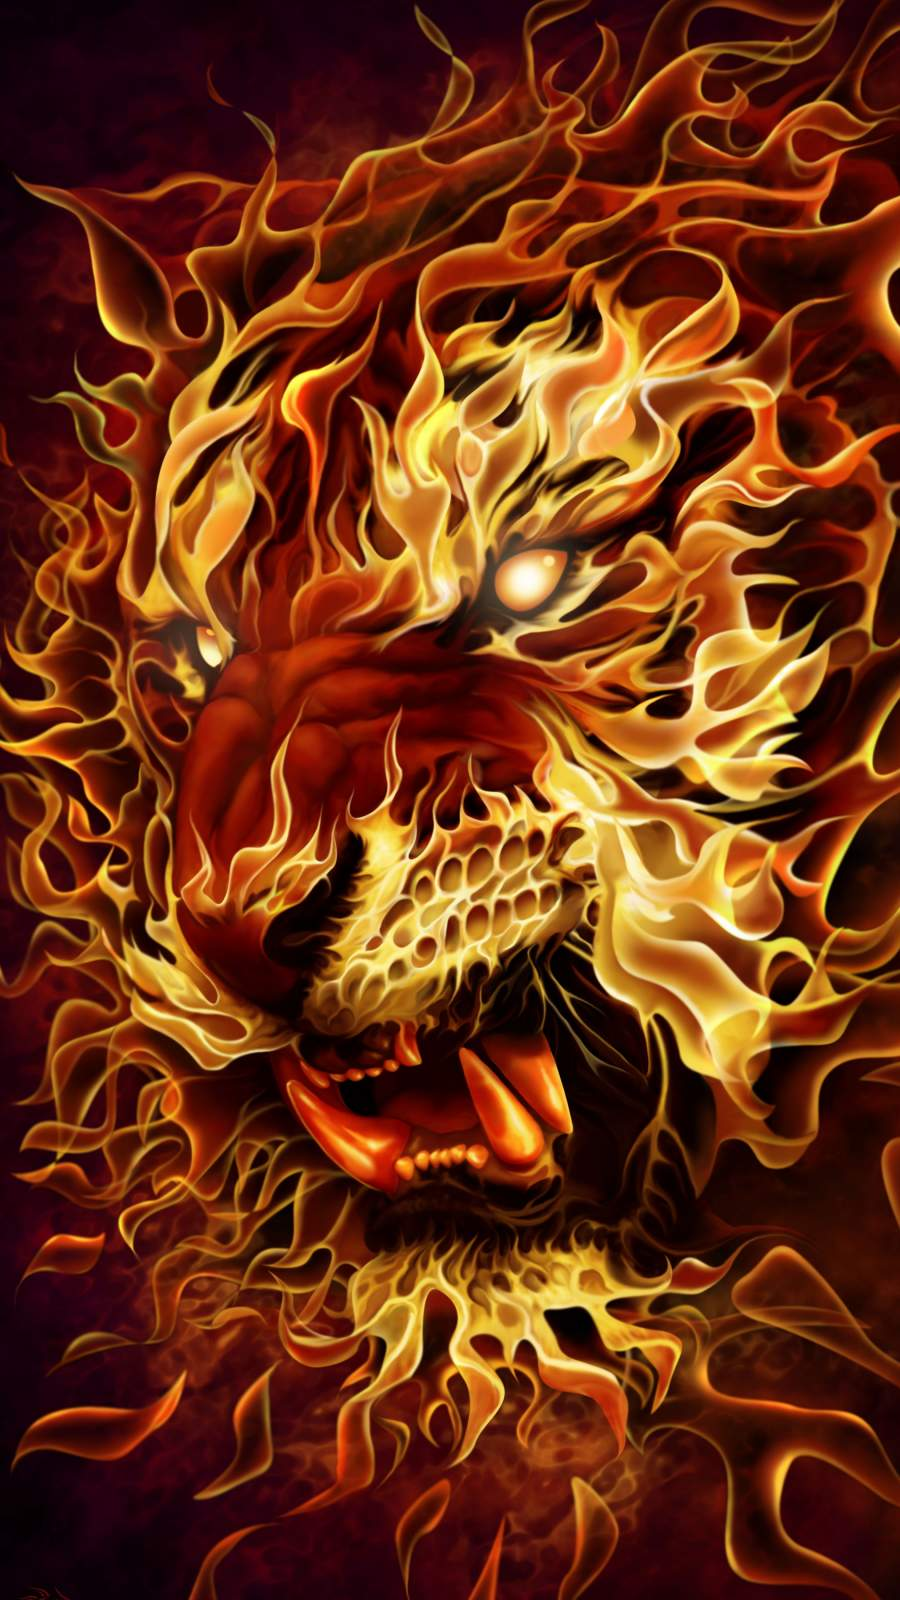 Tiger of Fire iPhone Wallpaper